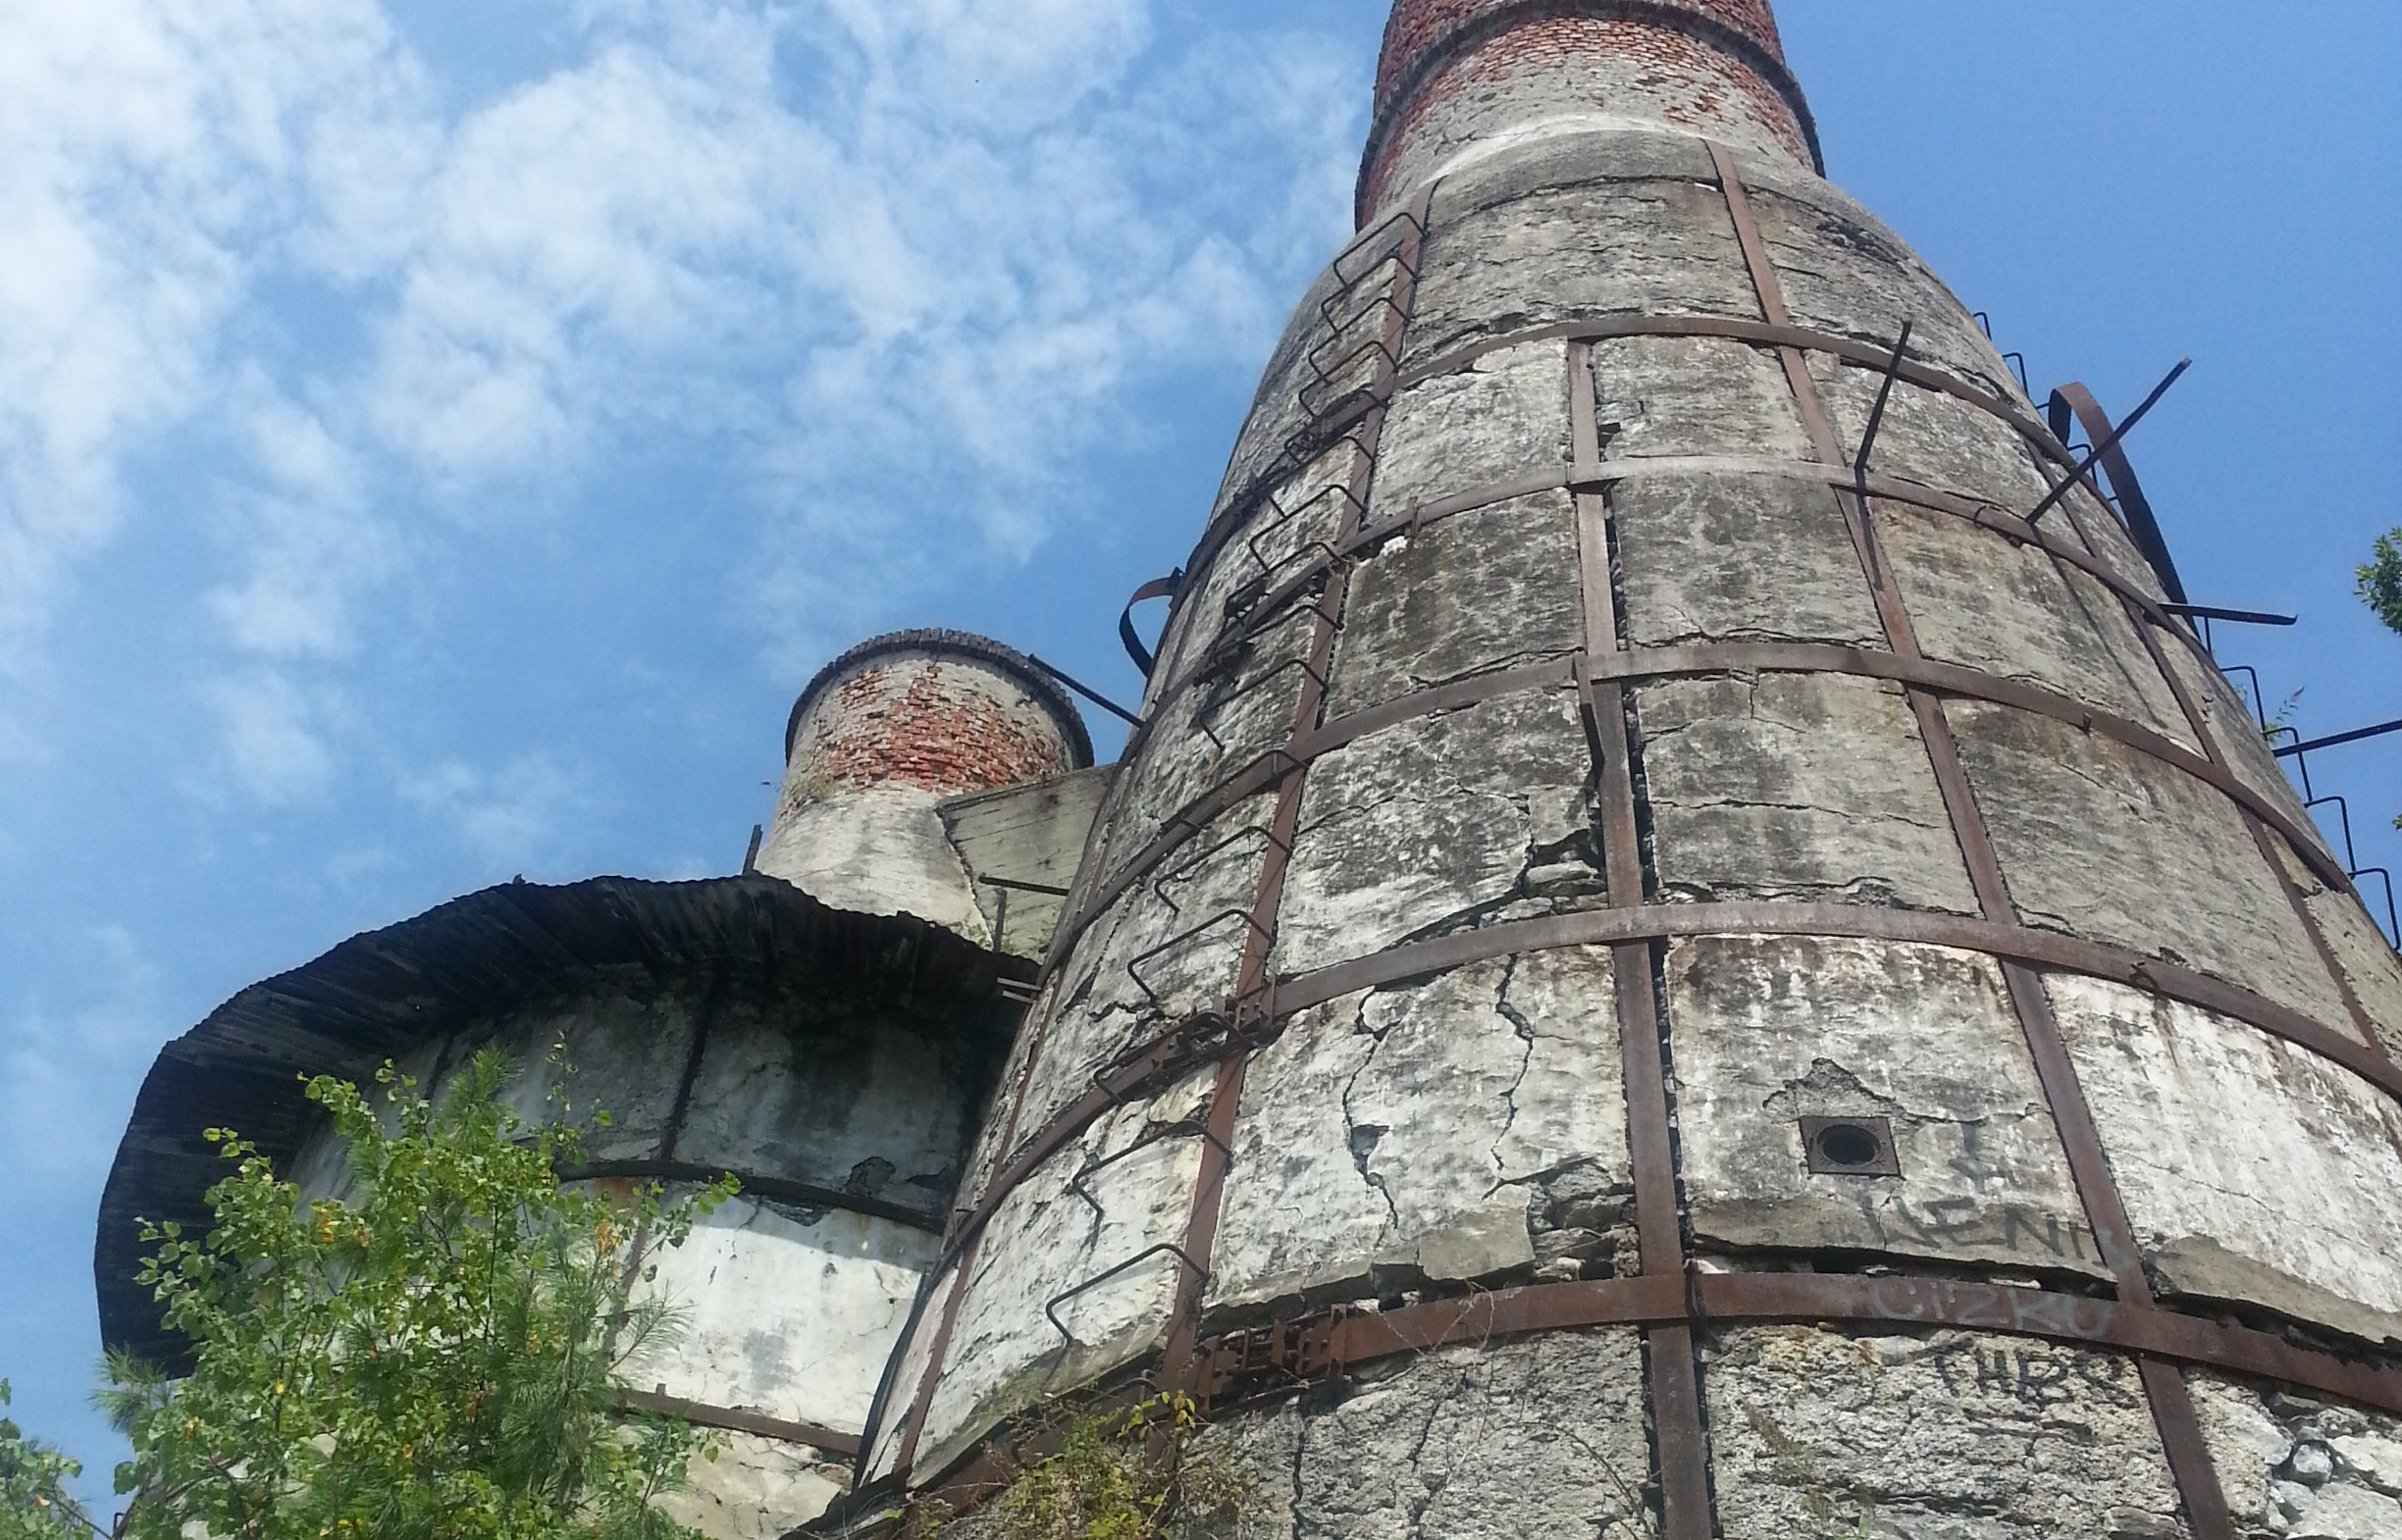 The Abandoned Furnace on Lake Maggiore